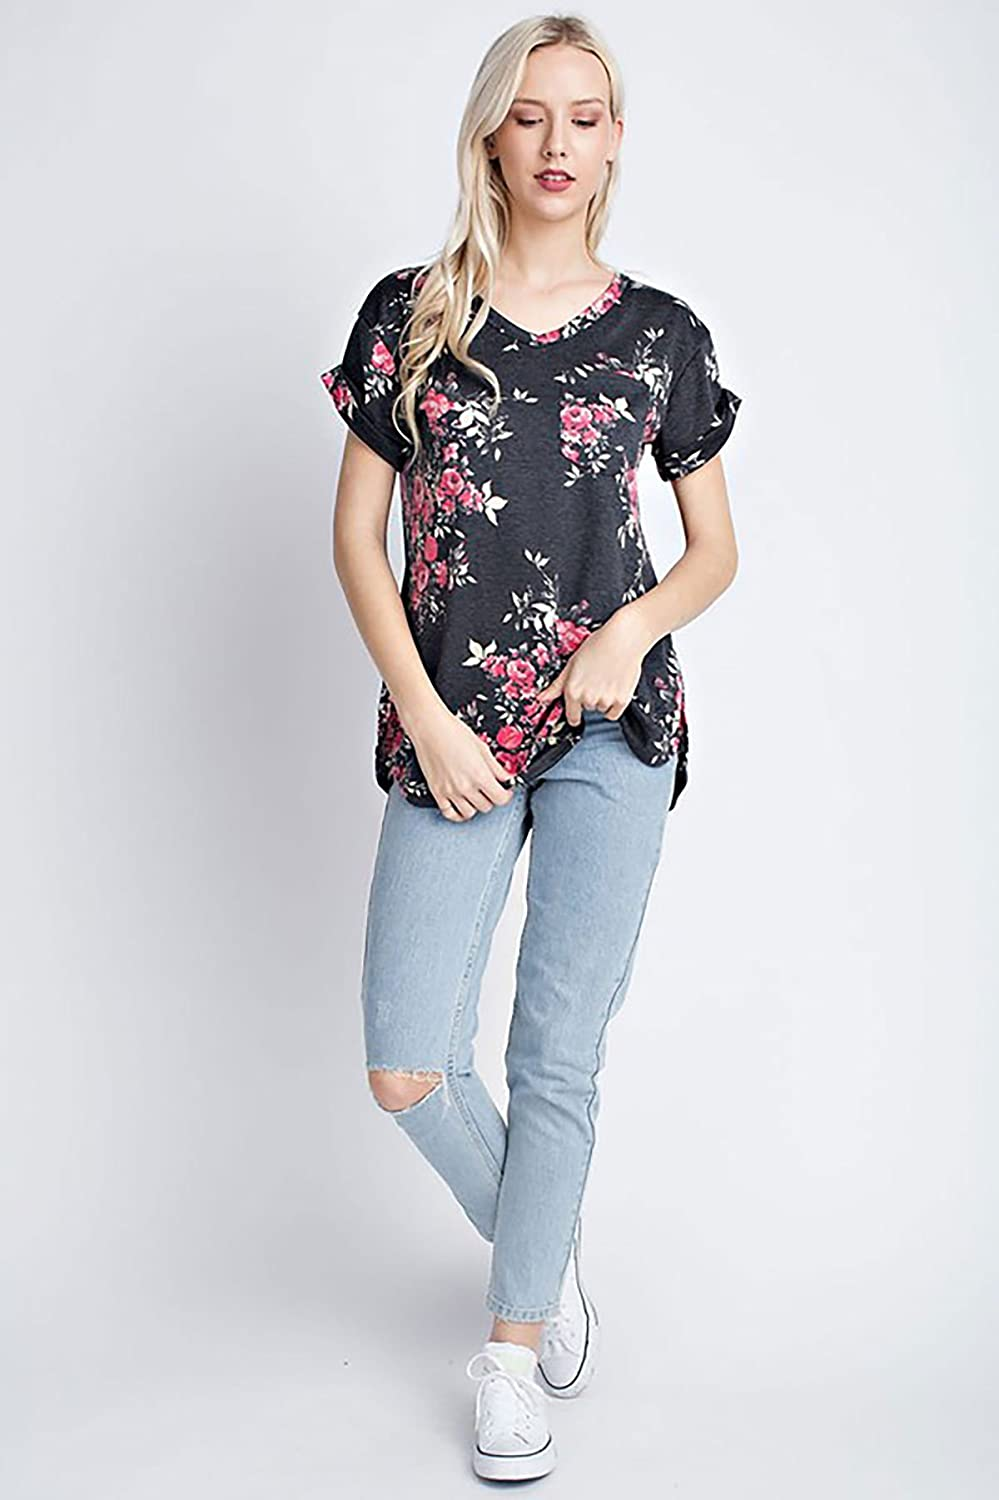 SHOPGLAMLA Fold Up Cuff Details Print Short Sleeves Top Blouse Made in USA